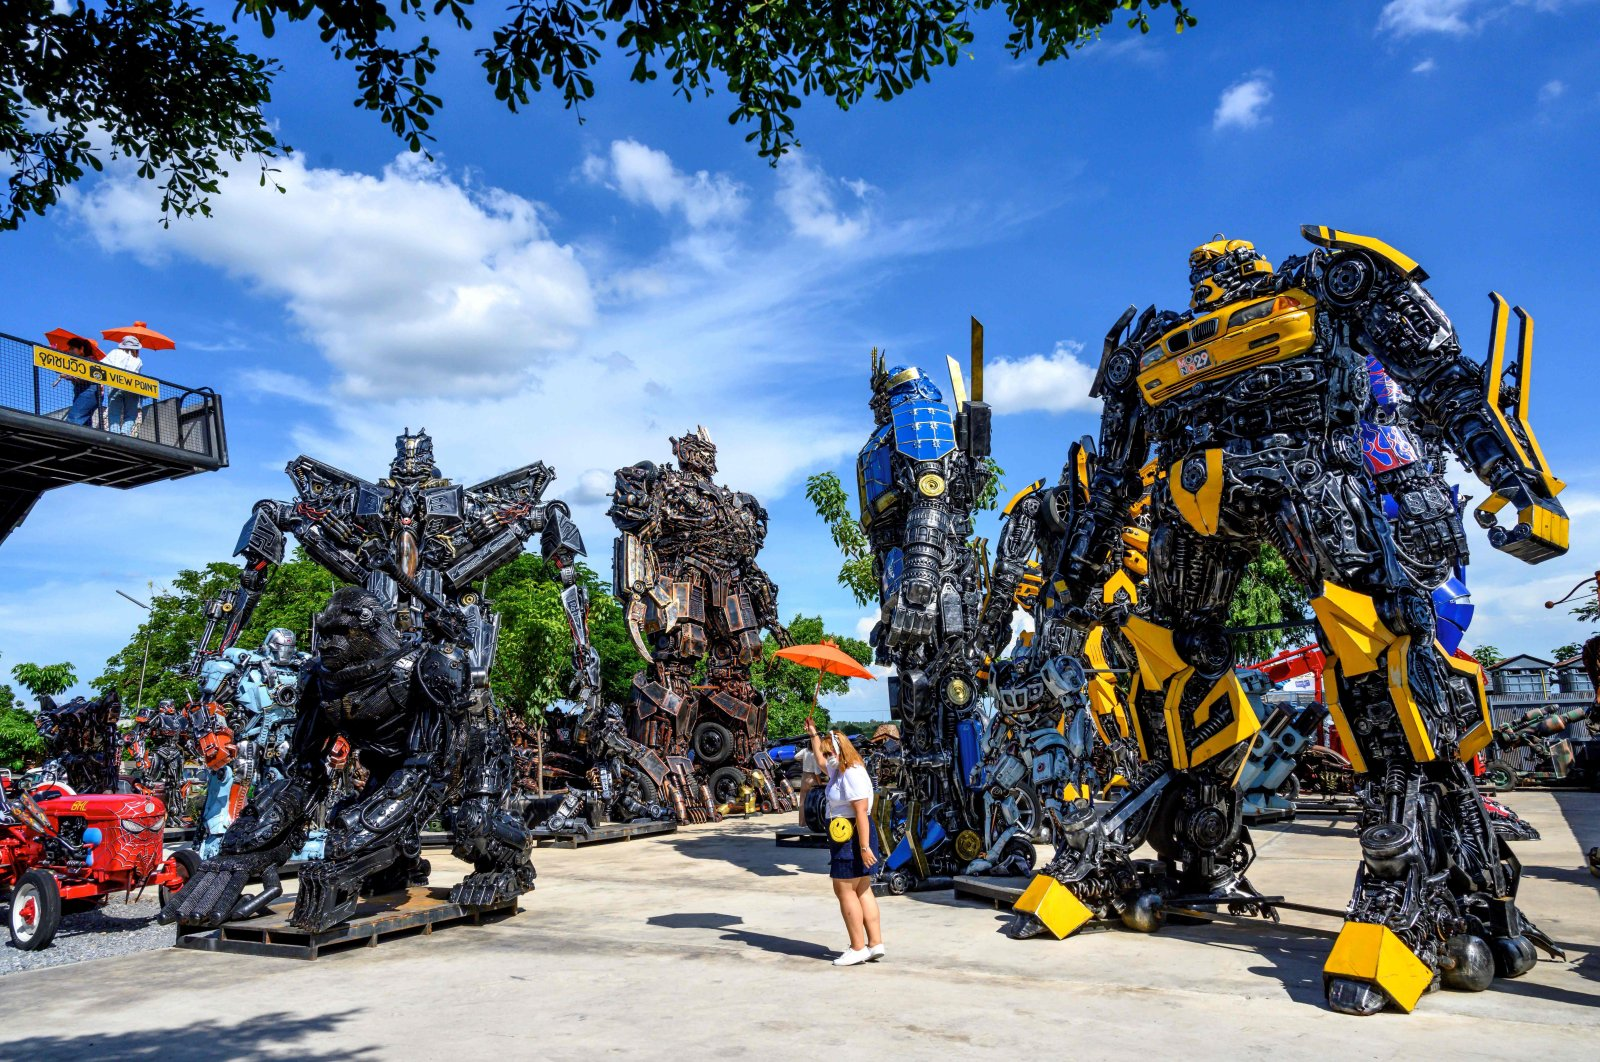 "Tourists take photos of life-sized sculptures of characters from the ""Transformers"" film franchise made of scrap metal parts at the Ban Hun Lek museum in Ang Thong, Thailand, July 18, 2020. (AFP PHOTO)"